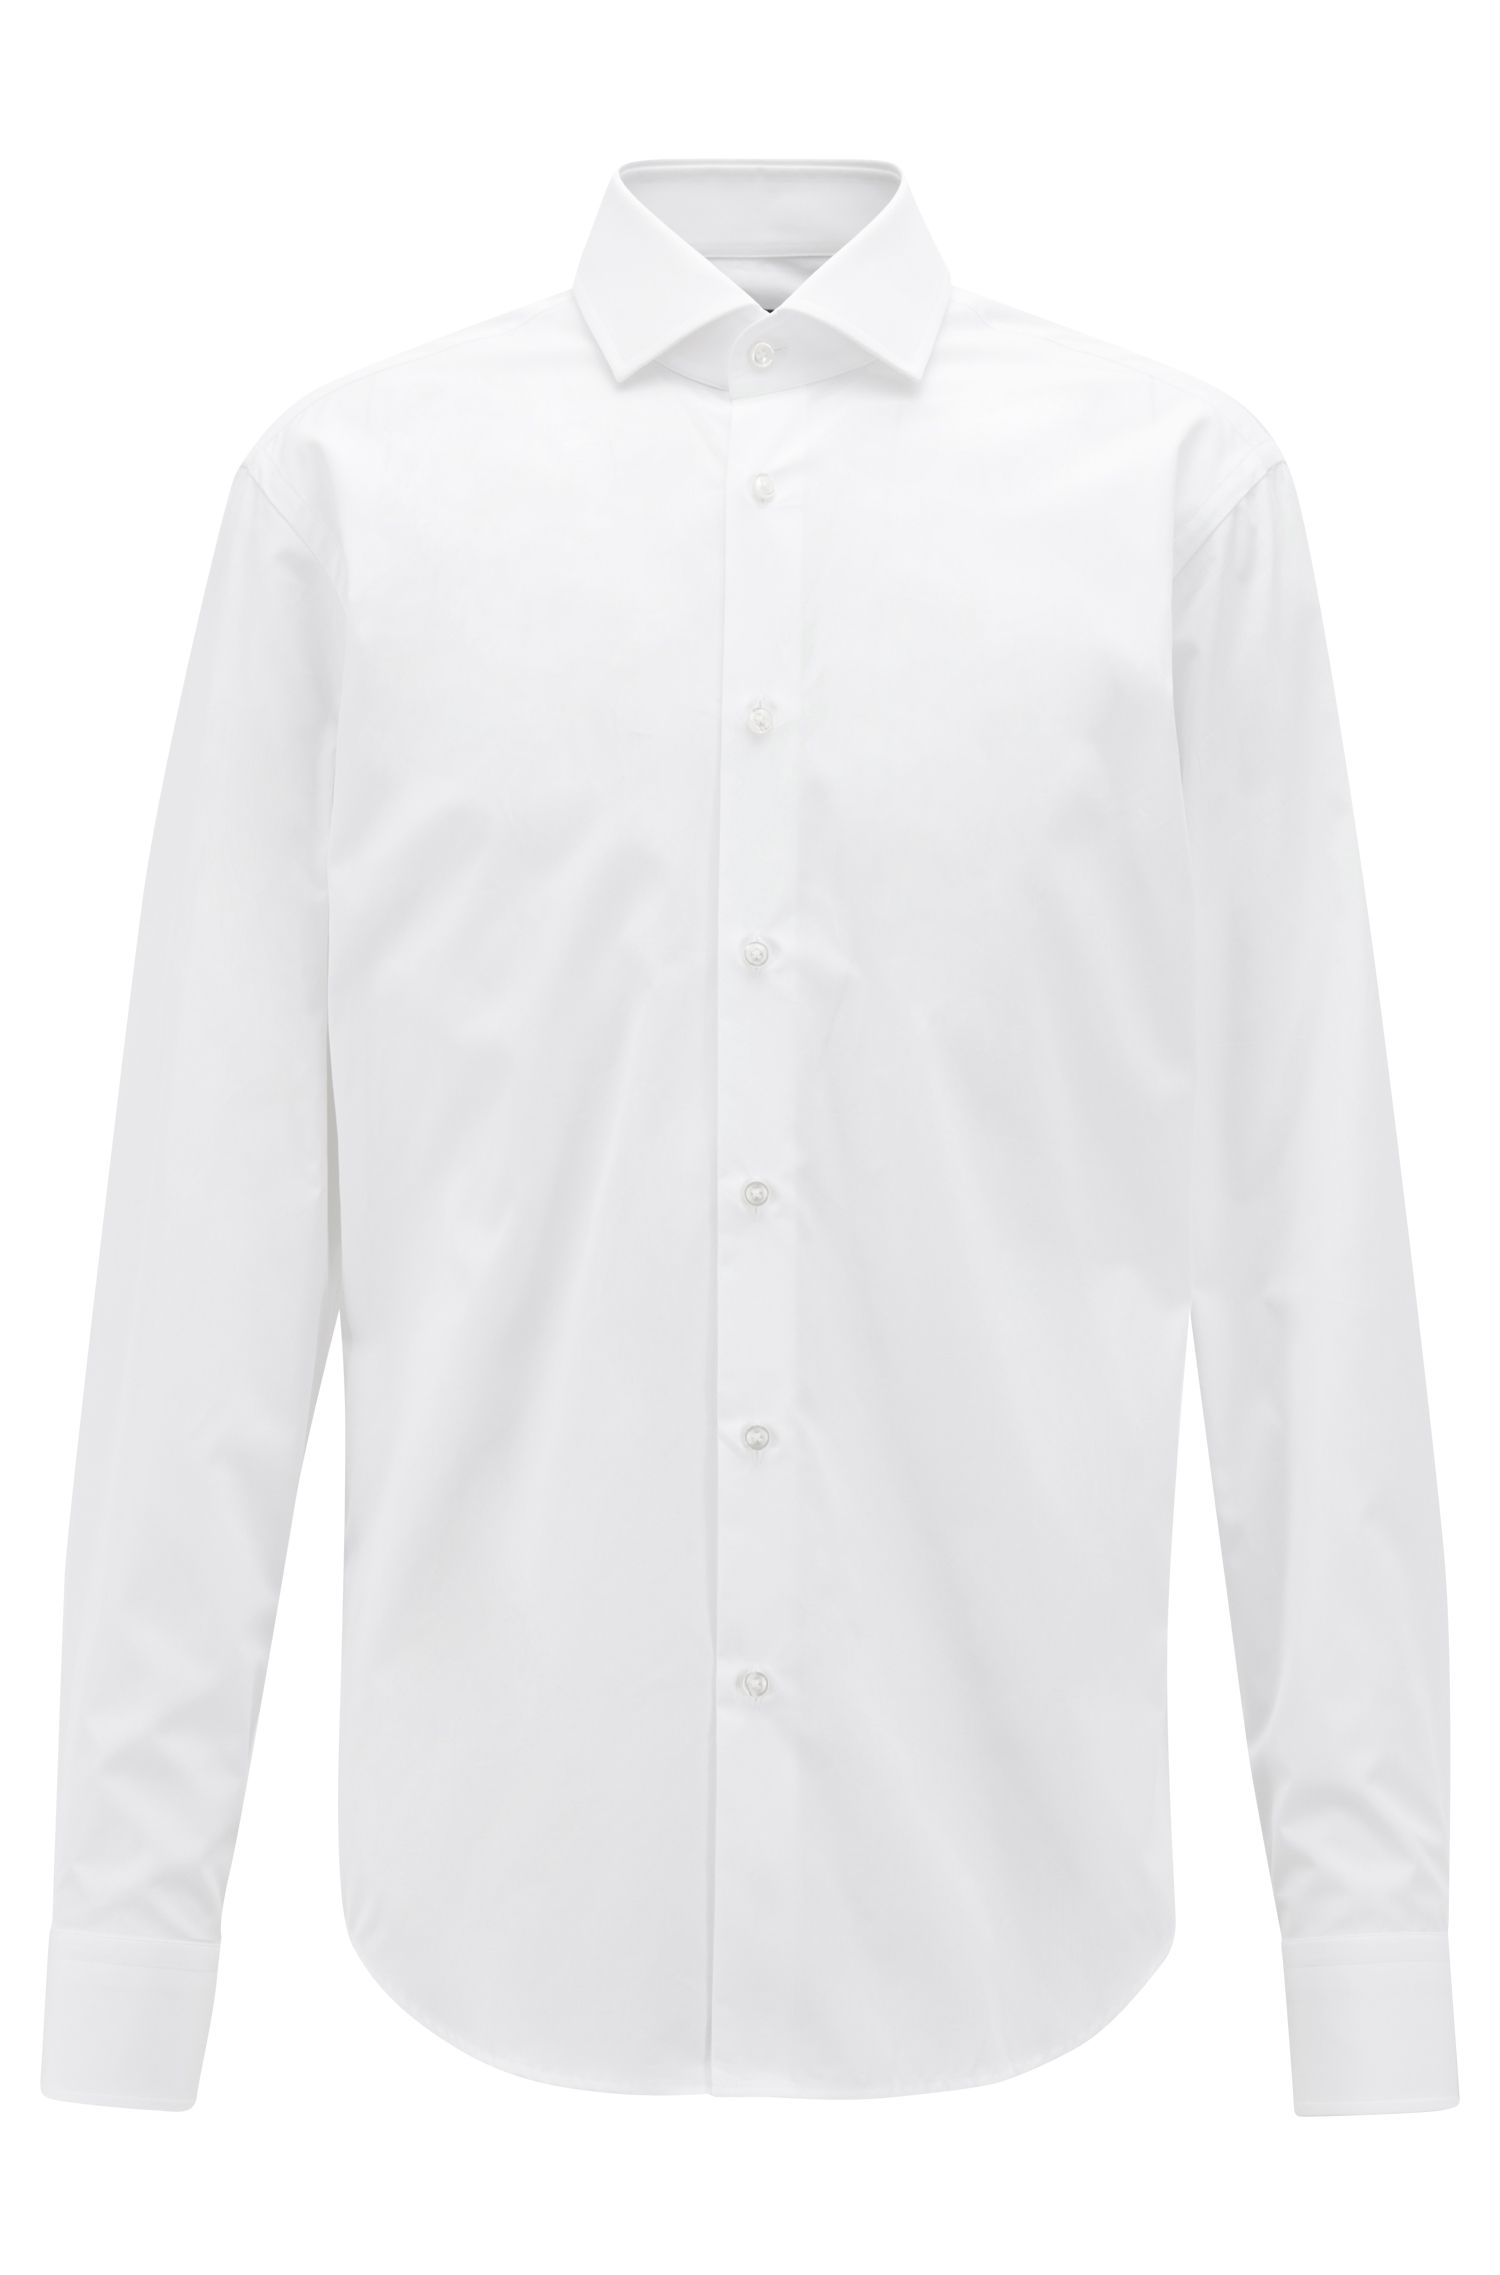 Regular-fit shirt in two-ply Italian cotton